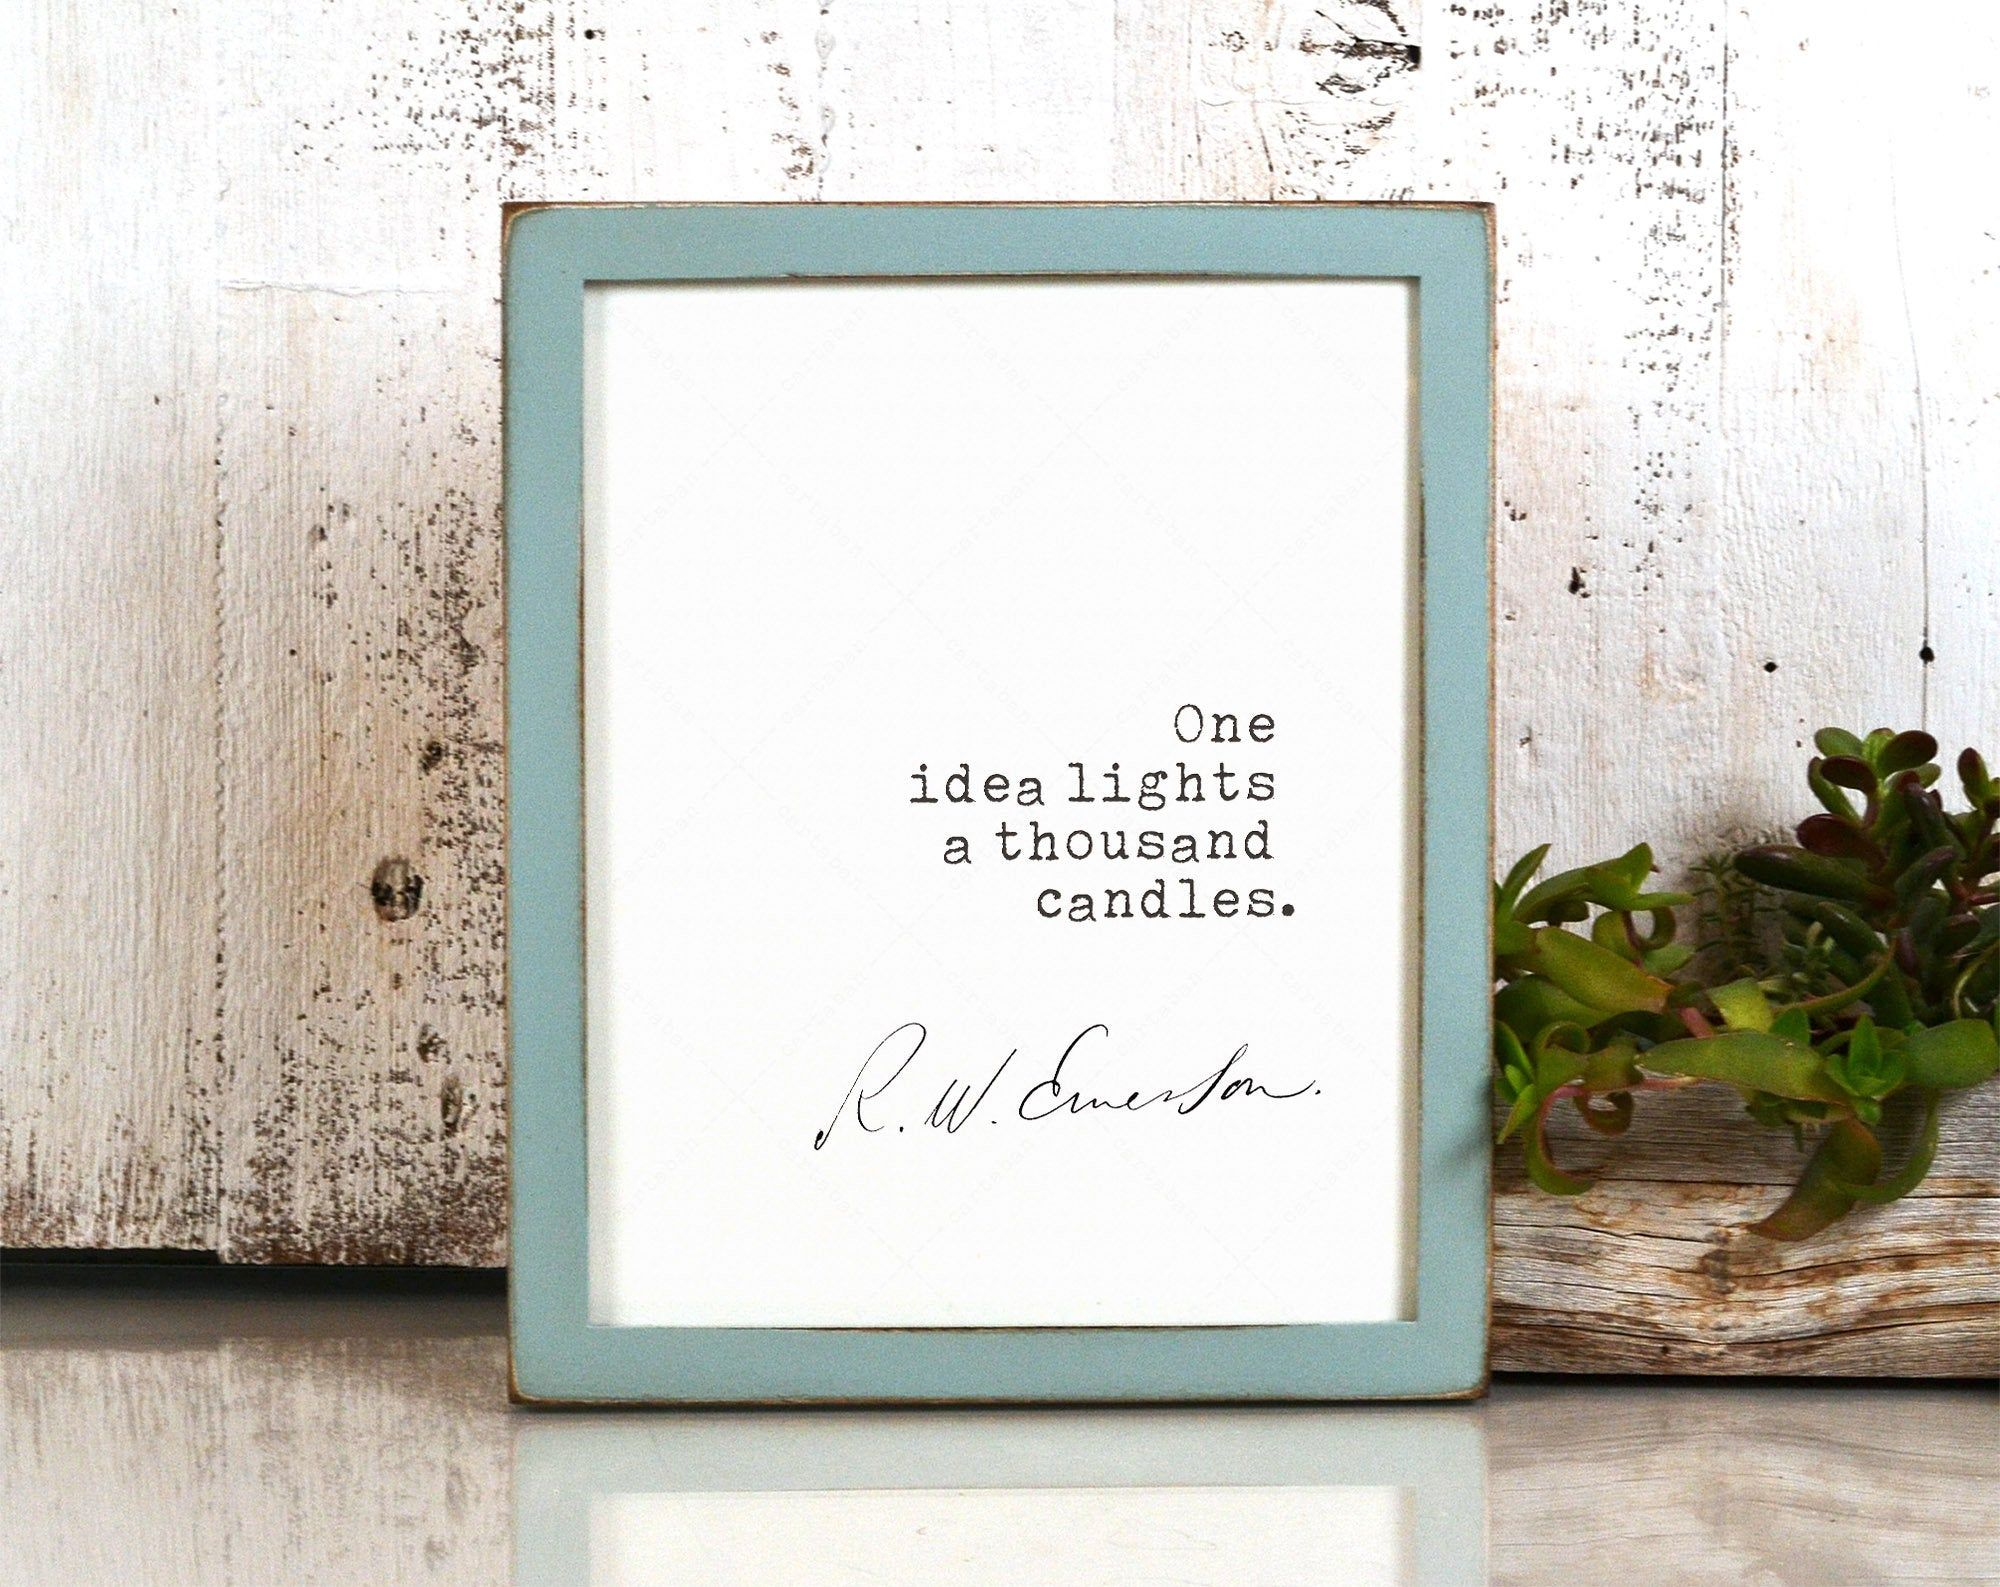 Ralph Waldo Emerson Quote Poster, book lovers gifts, digital download print, printable poster